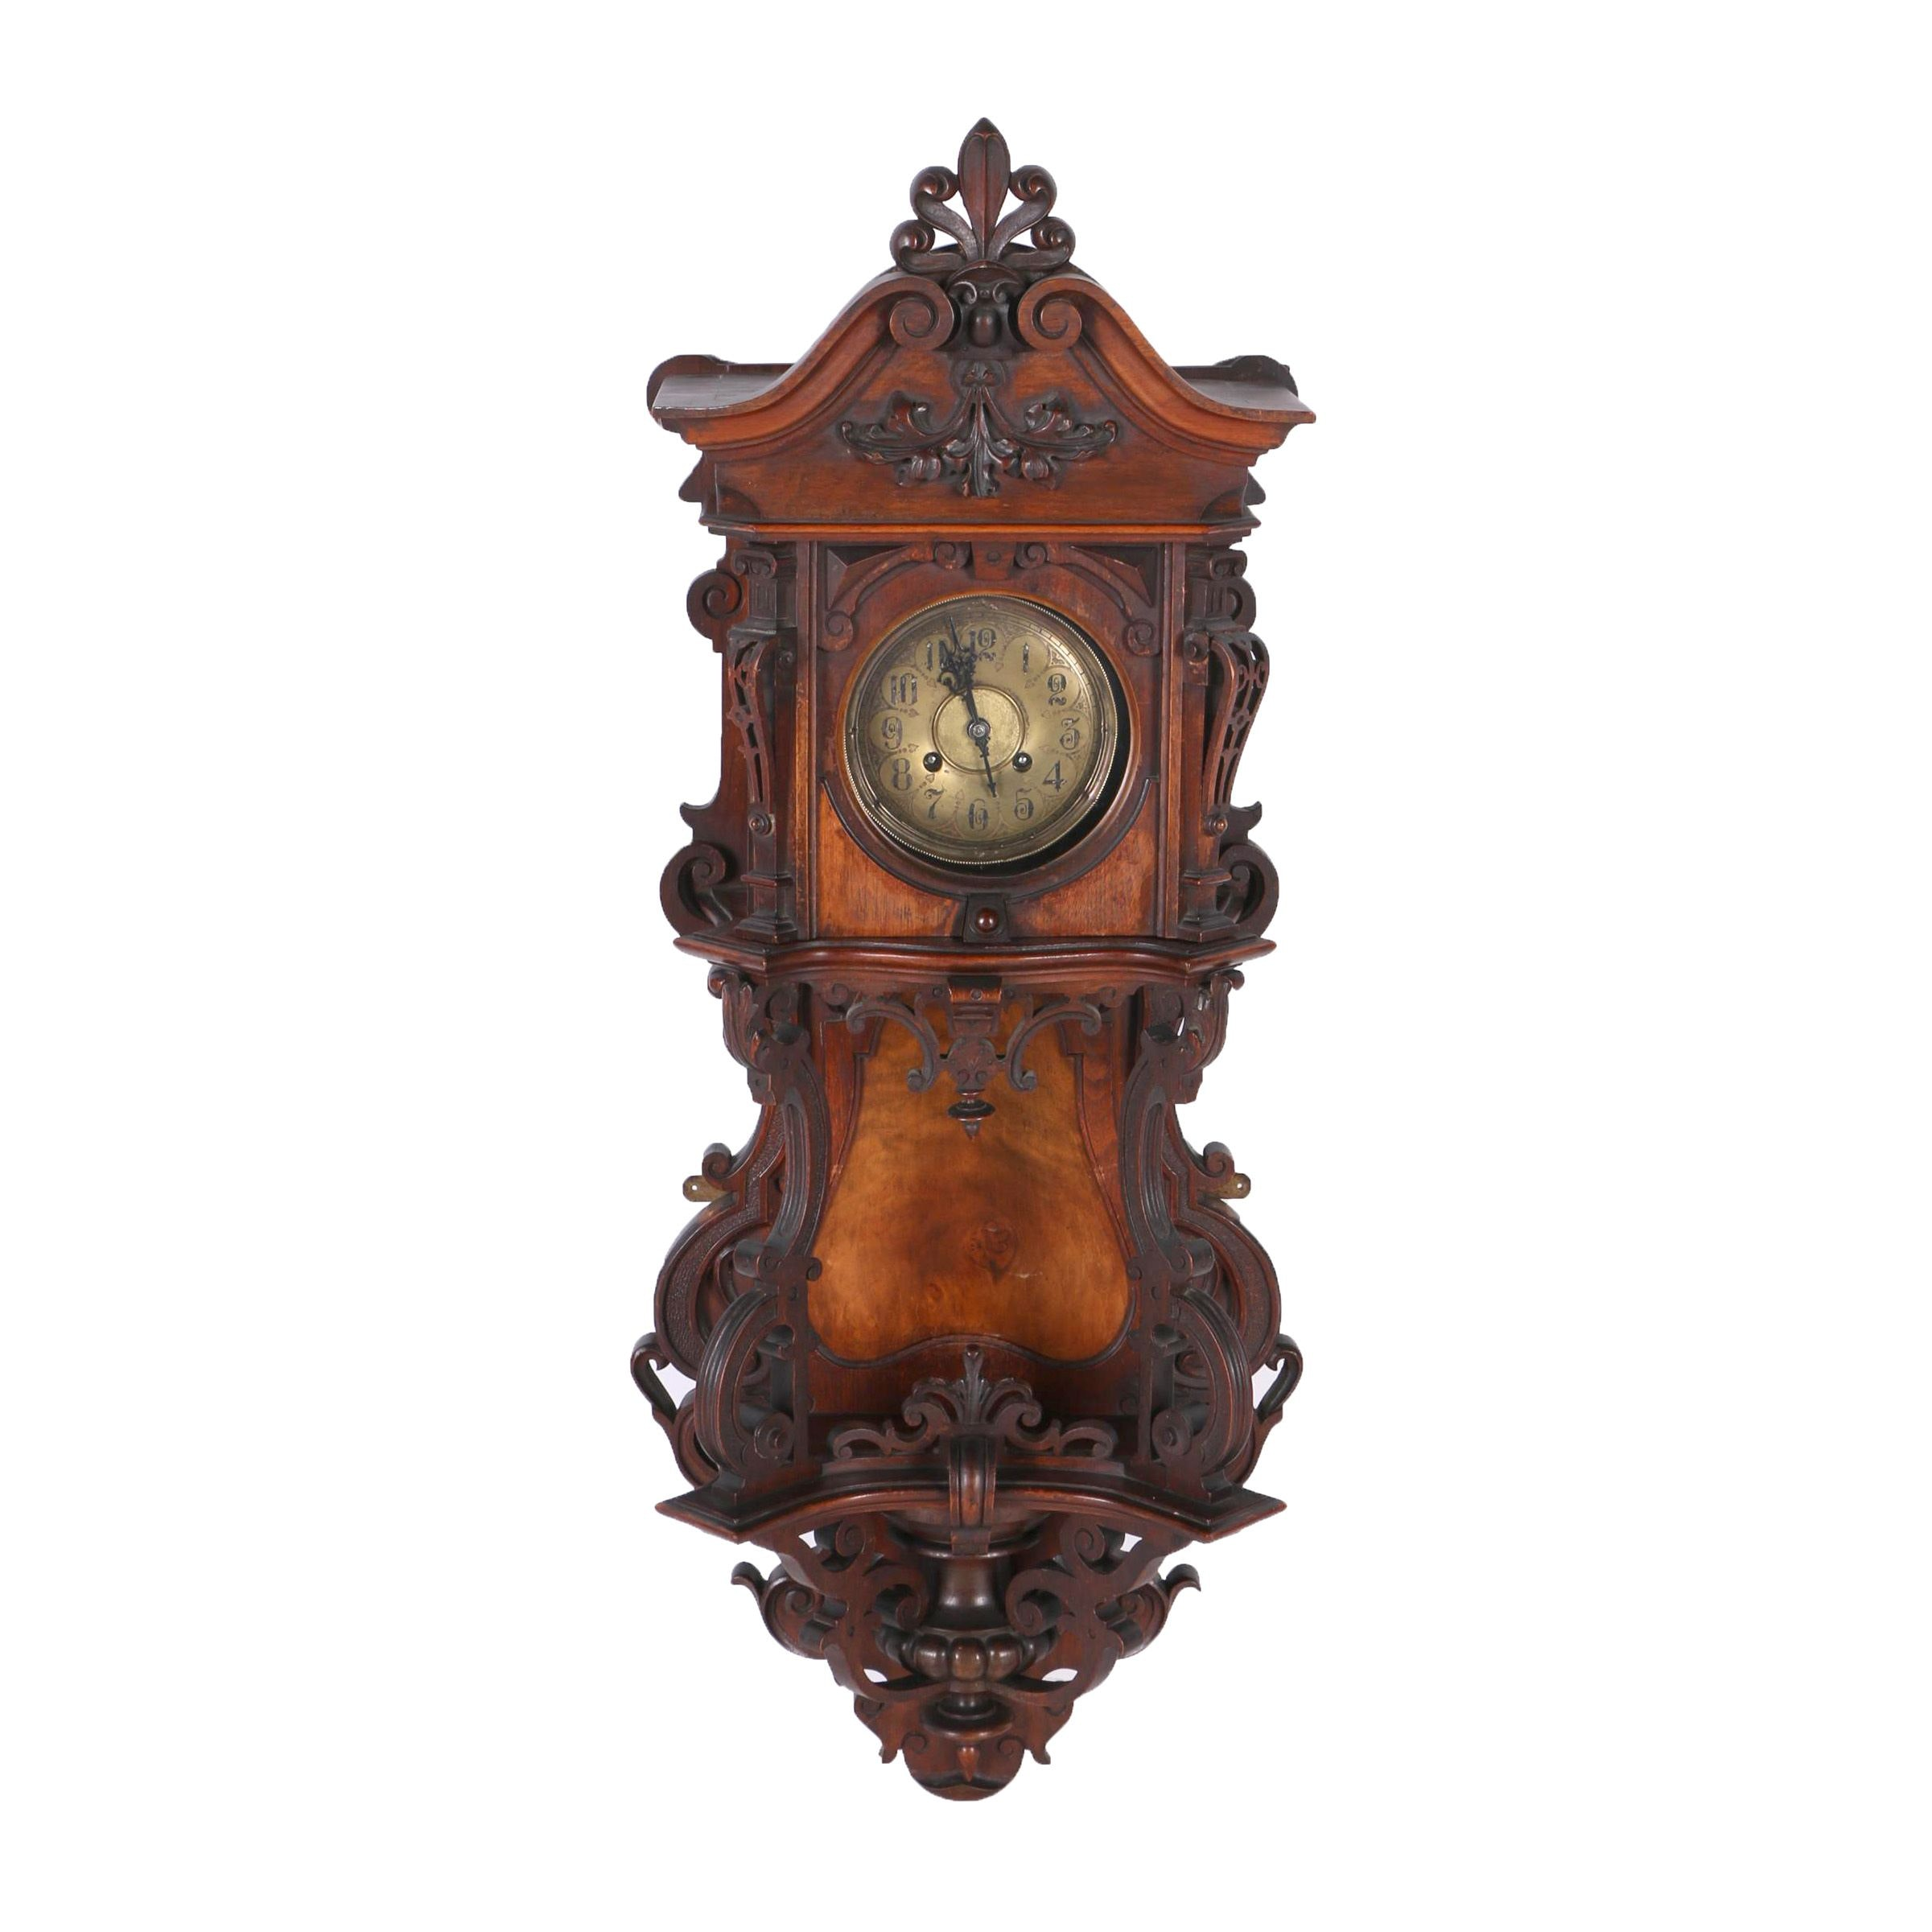 Viennese Style Carved Wood Clock After Gustav and Becker